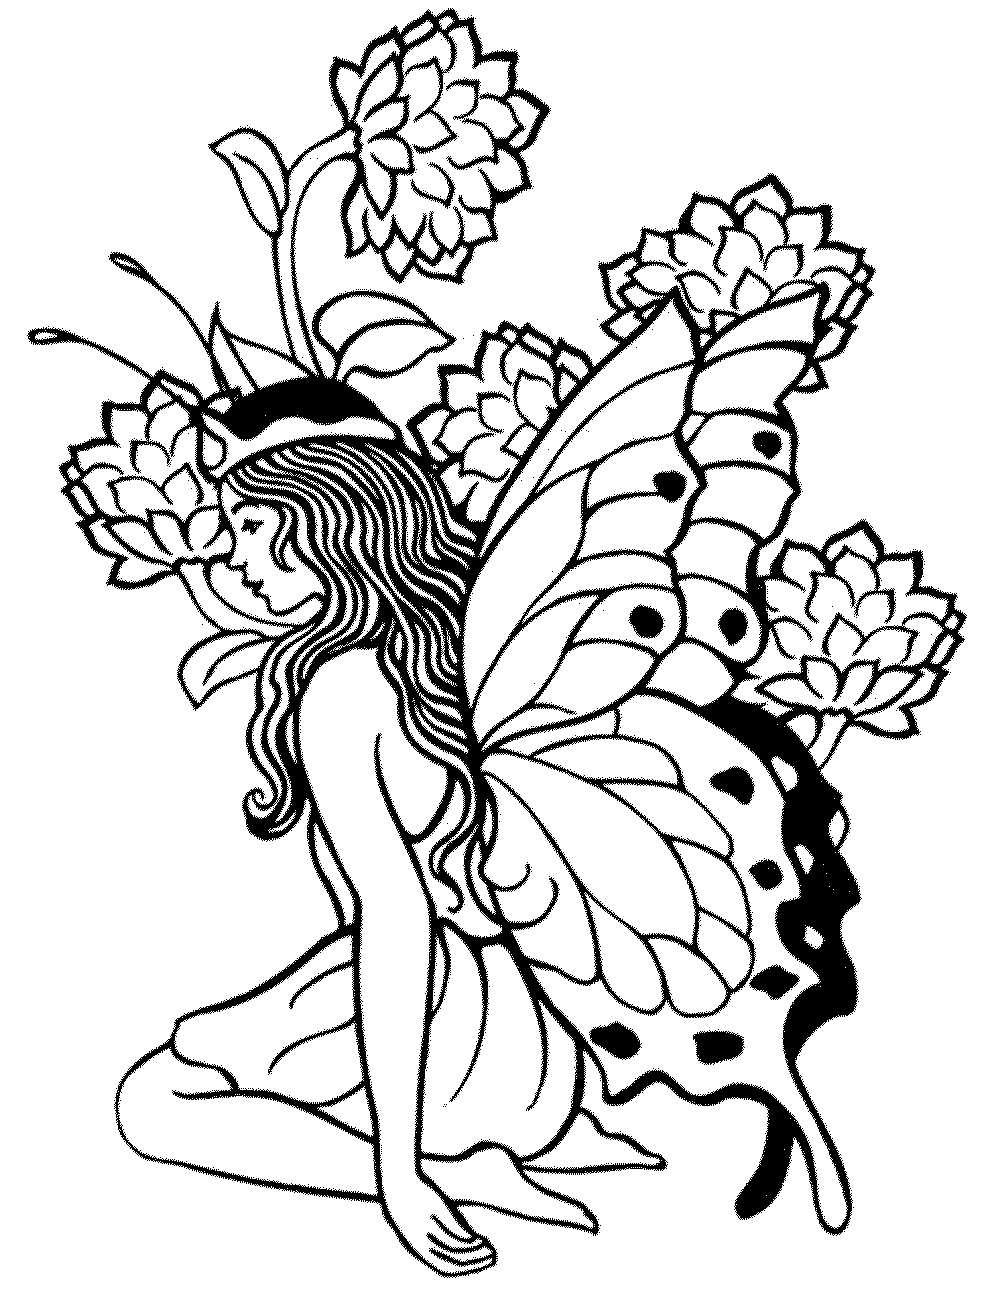 coloring pages for adults printable free - Colouring Templates For Kids